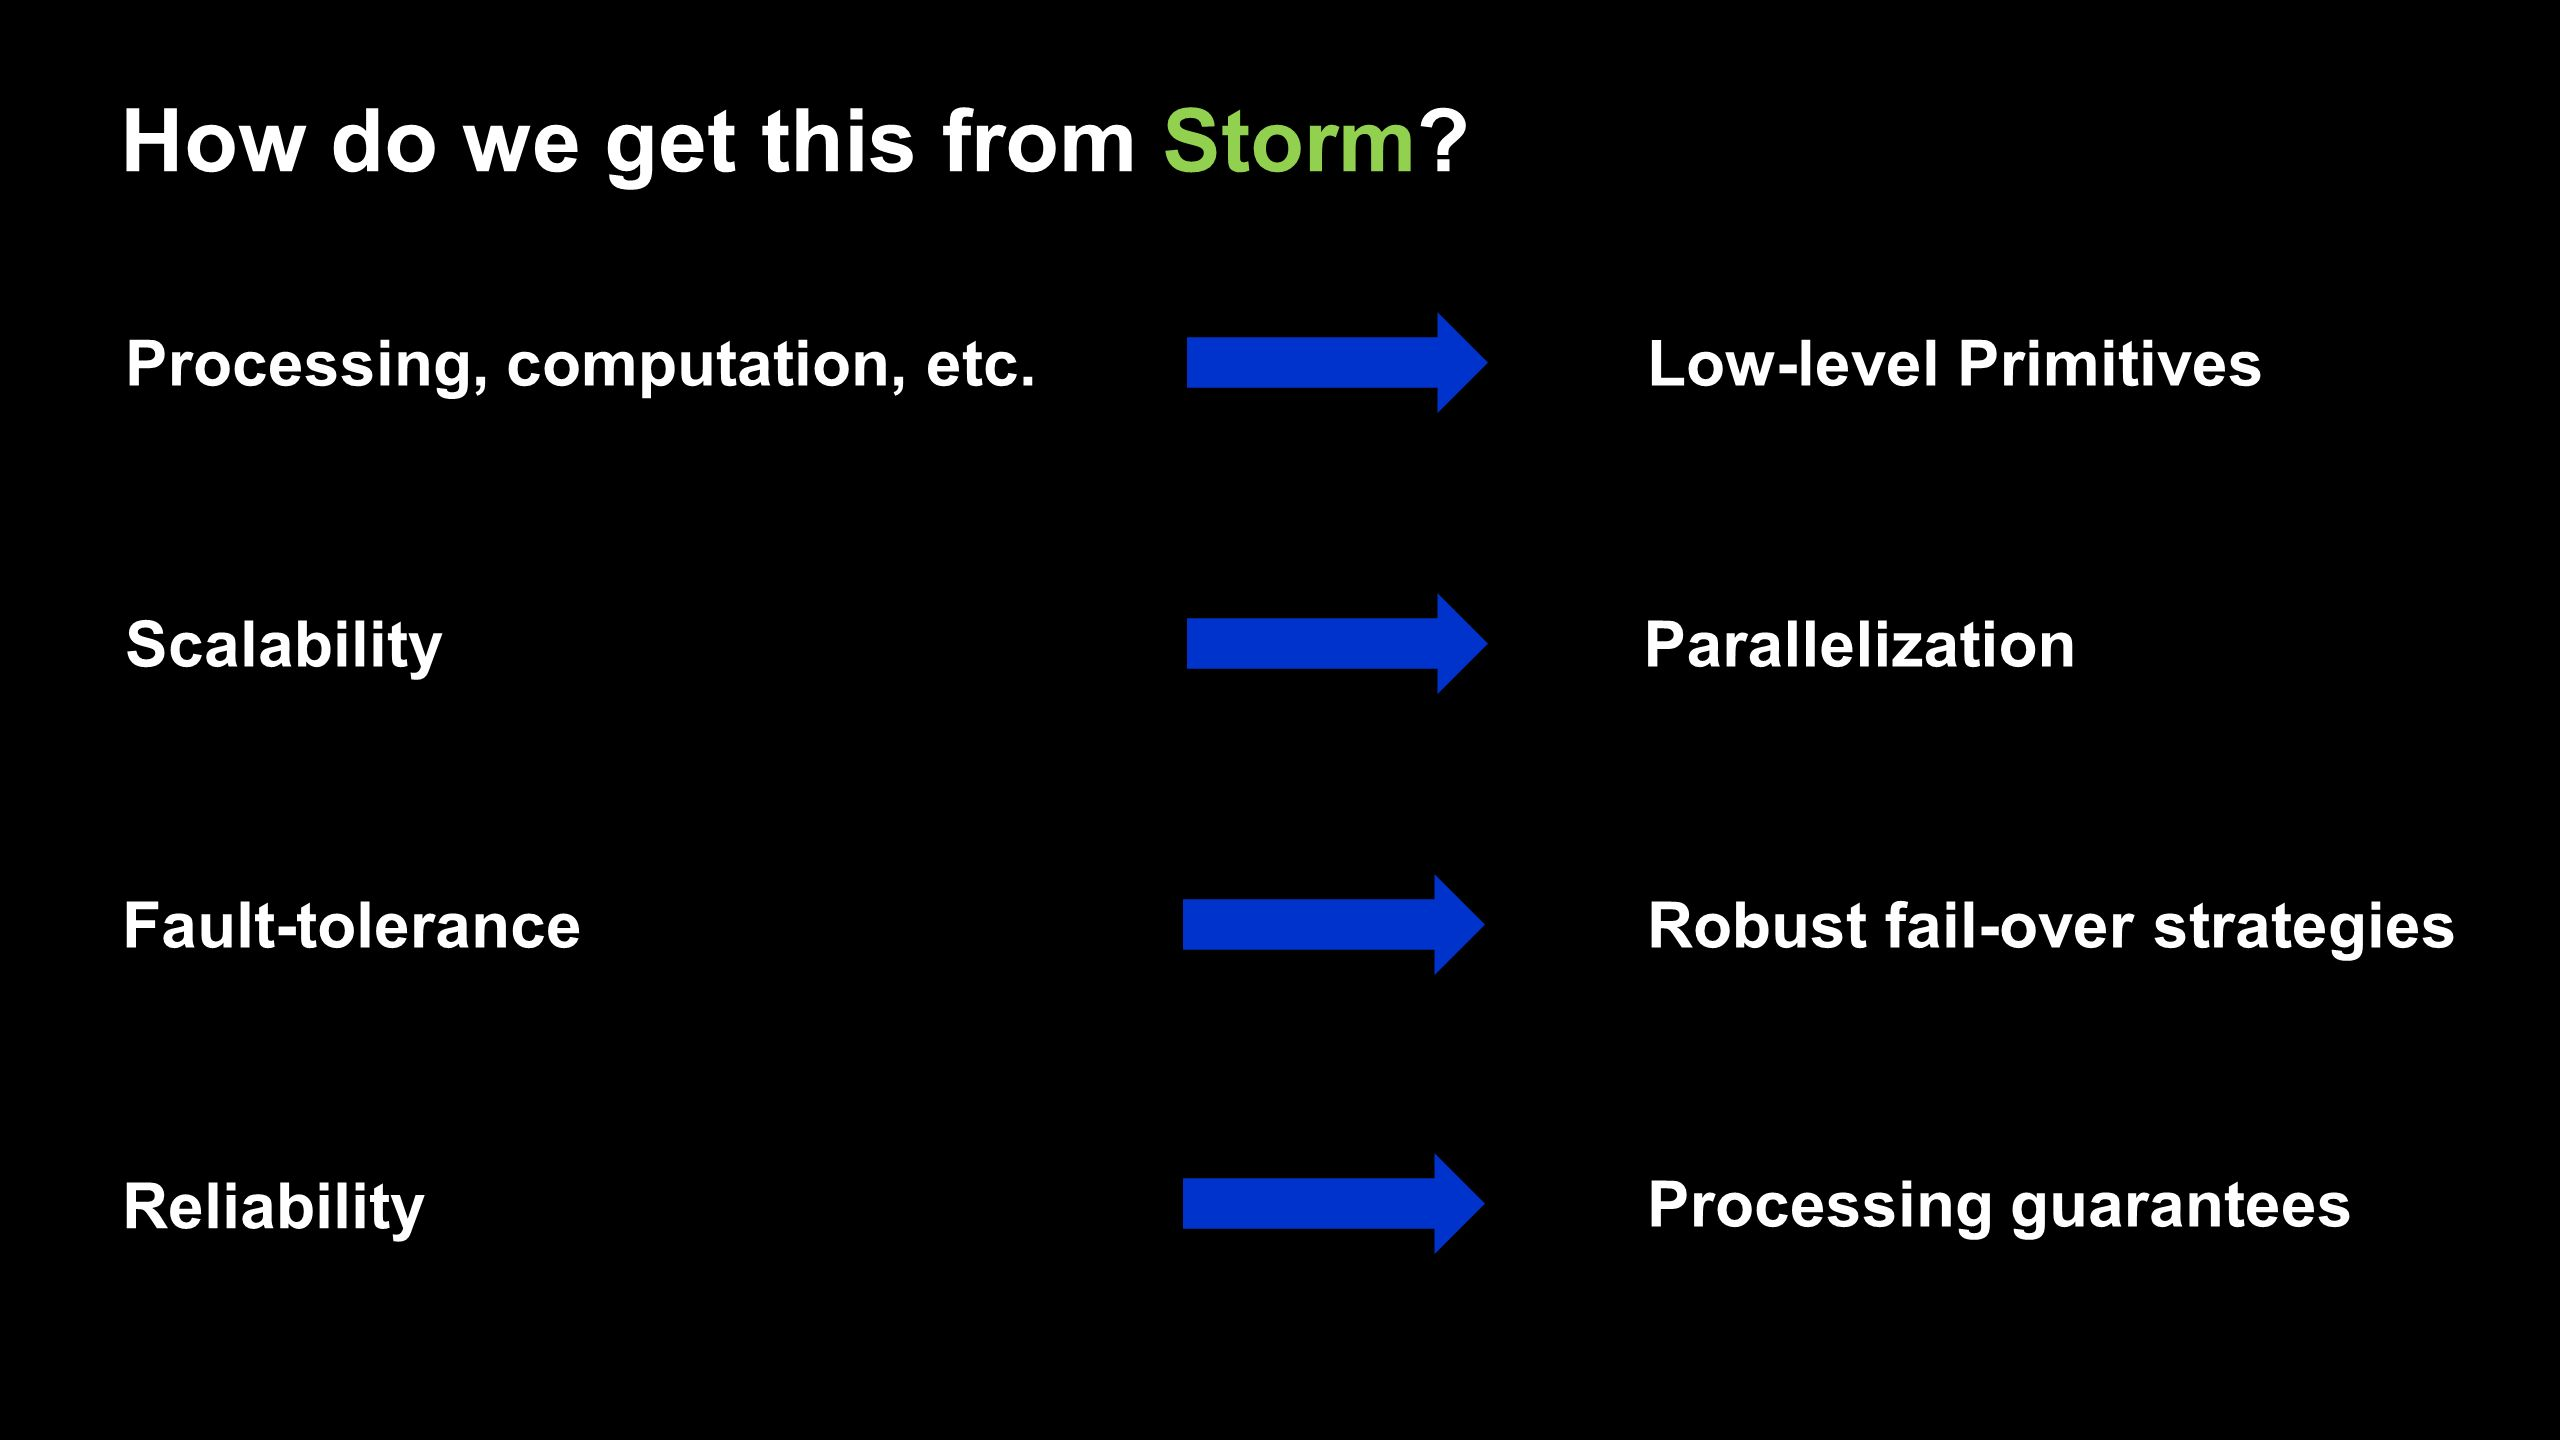 How do we get this from Storm? Processing guarantees Low-level Primitives Parallelization Robust fail-over strategies Scalability Reliability Fault-to